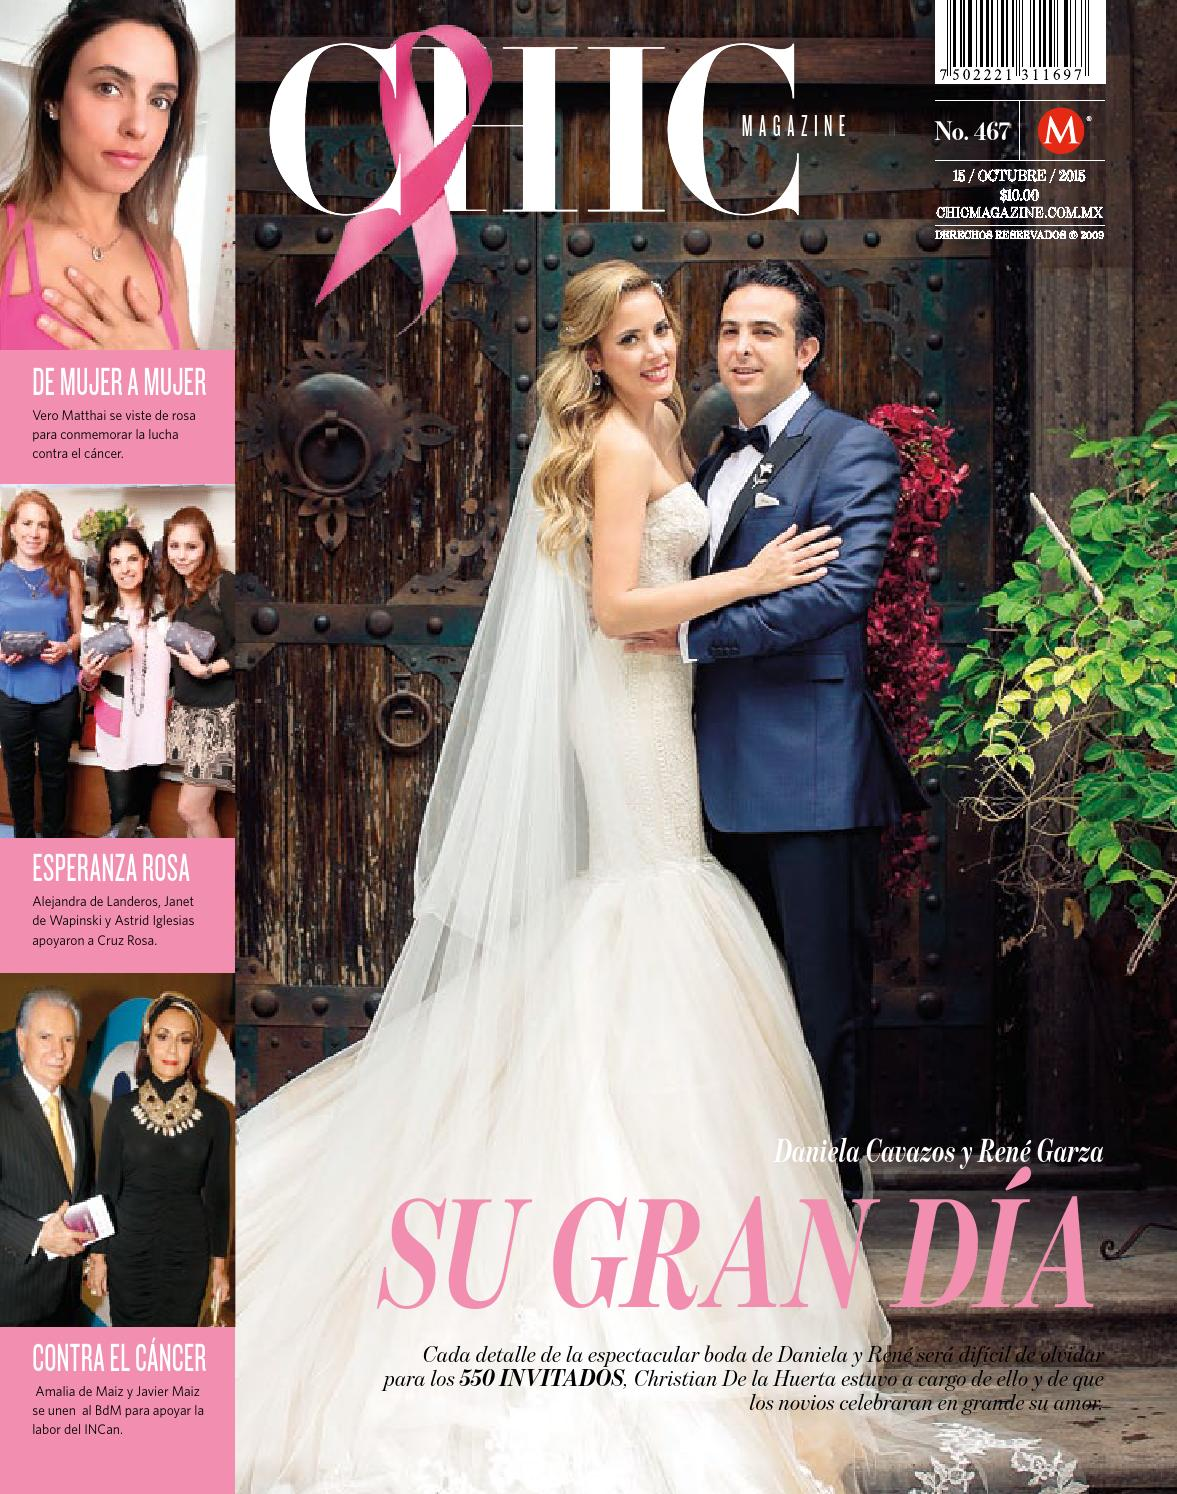 Chic Magazine Monterrey N M 467 15 Oct 2015 By Chic Magazine  # Muebles Lety Cavazos